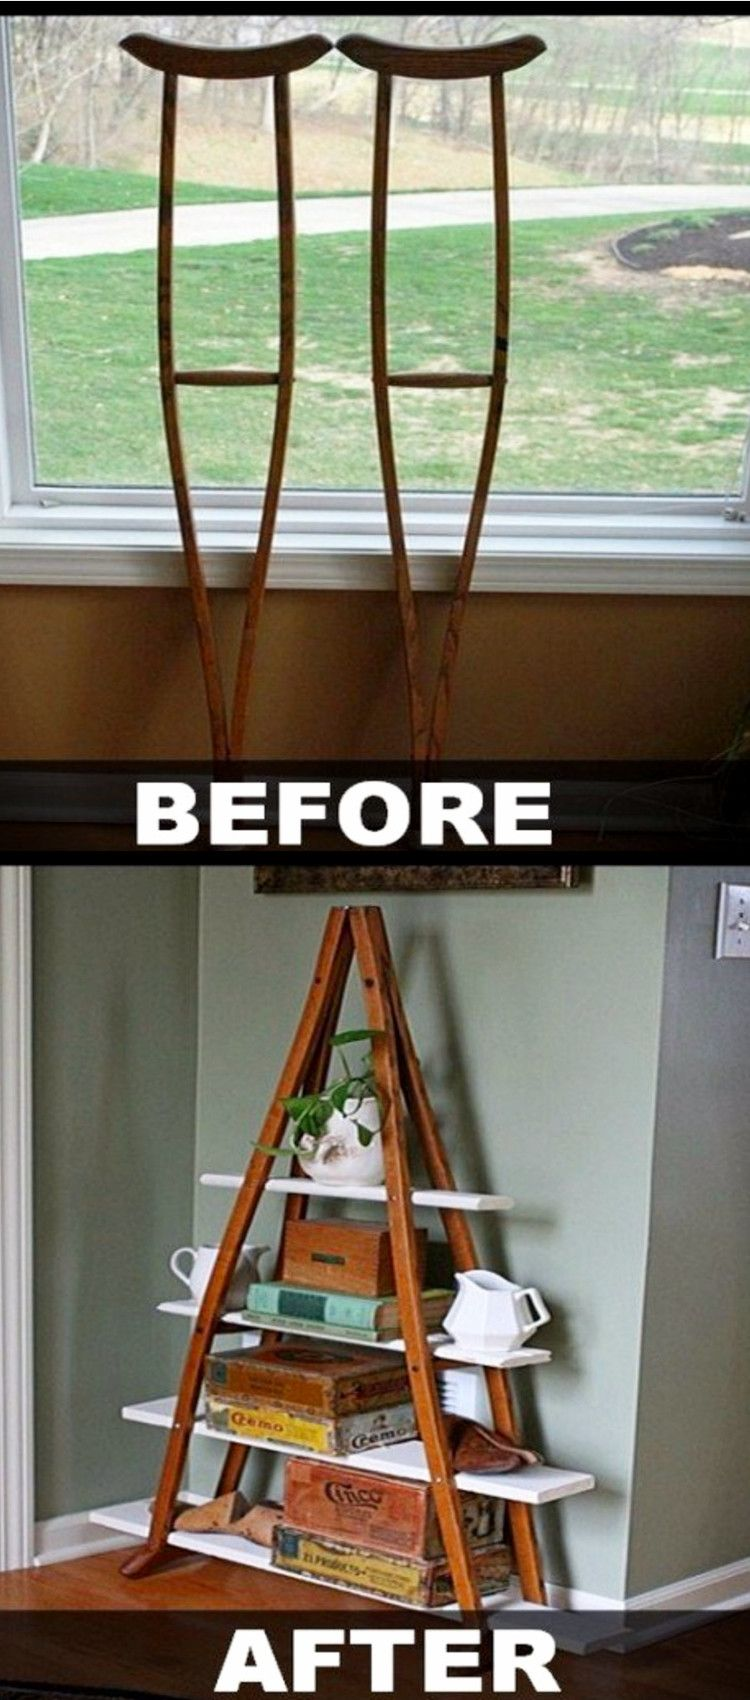 Upcycled Home Decor Ideas Part - 32: Upcycled Home Decor Ideas U2022 Turn Old Crutches Into Shelves